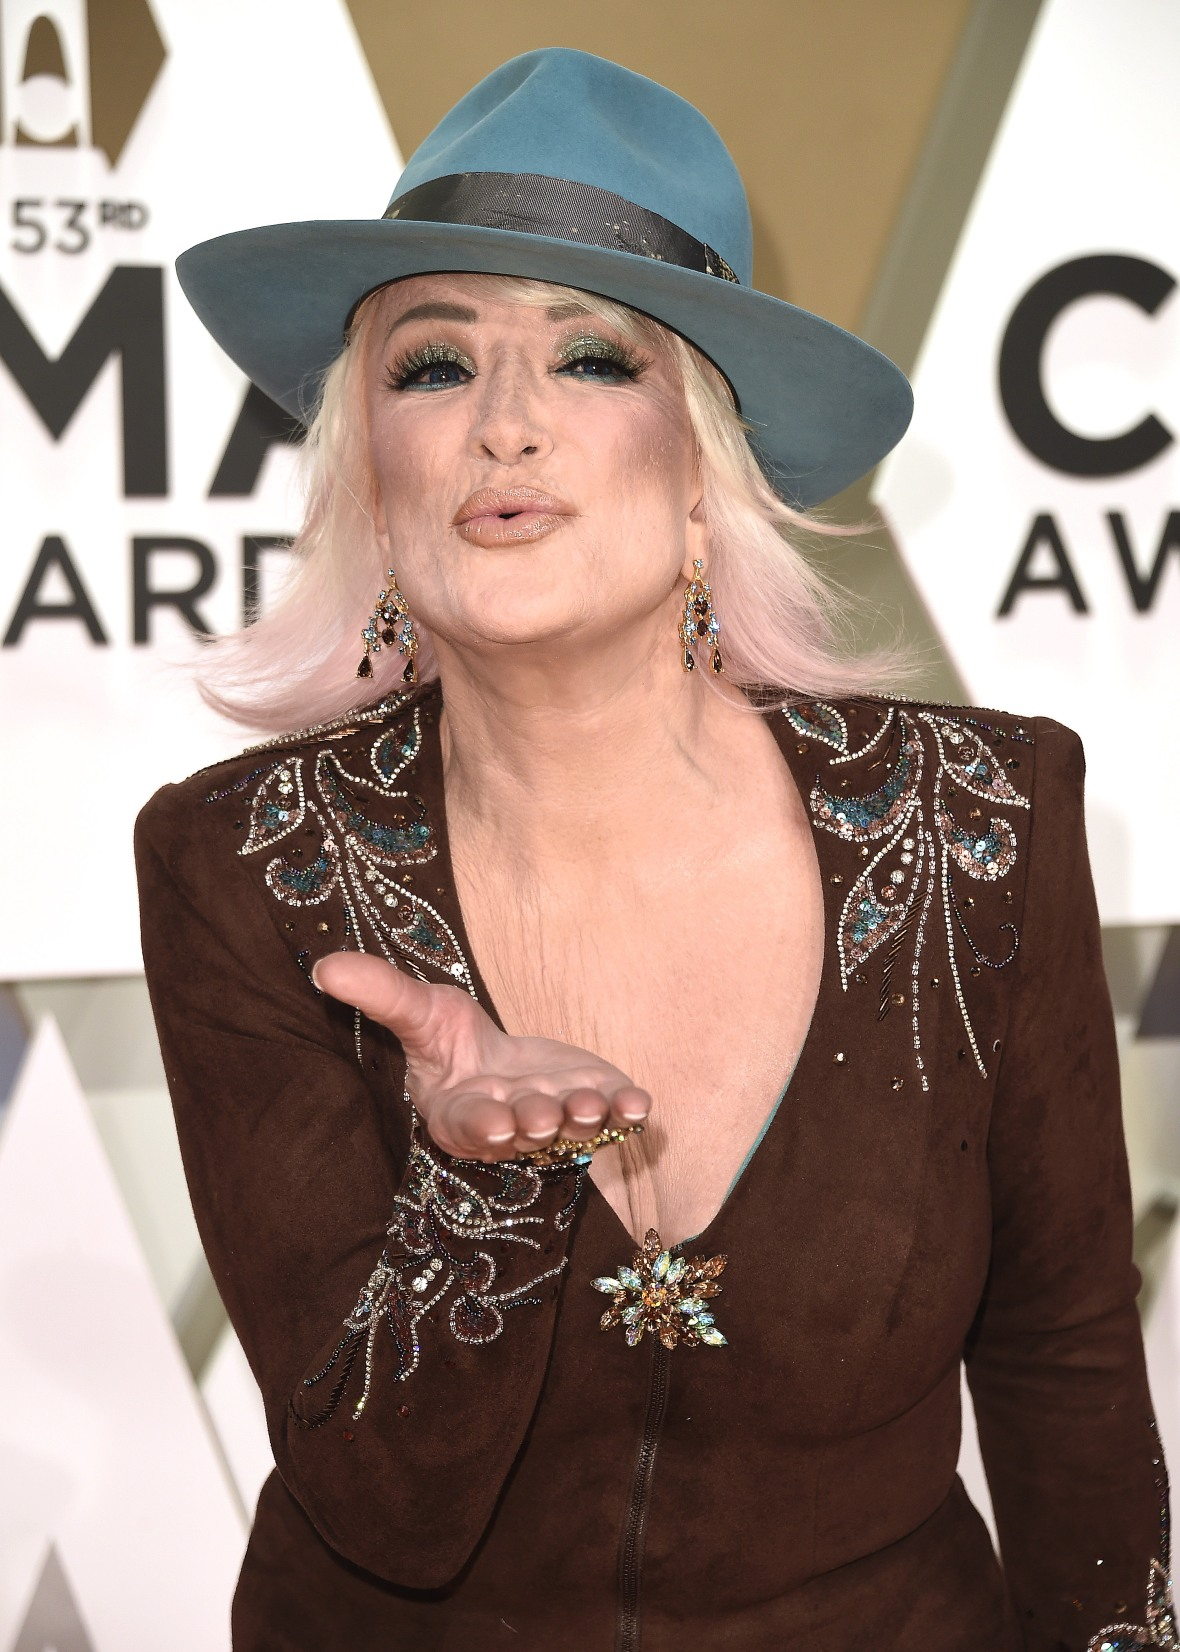 Tanya Tucker Blowing a Kiss at the 2019 CMAs